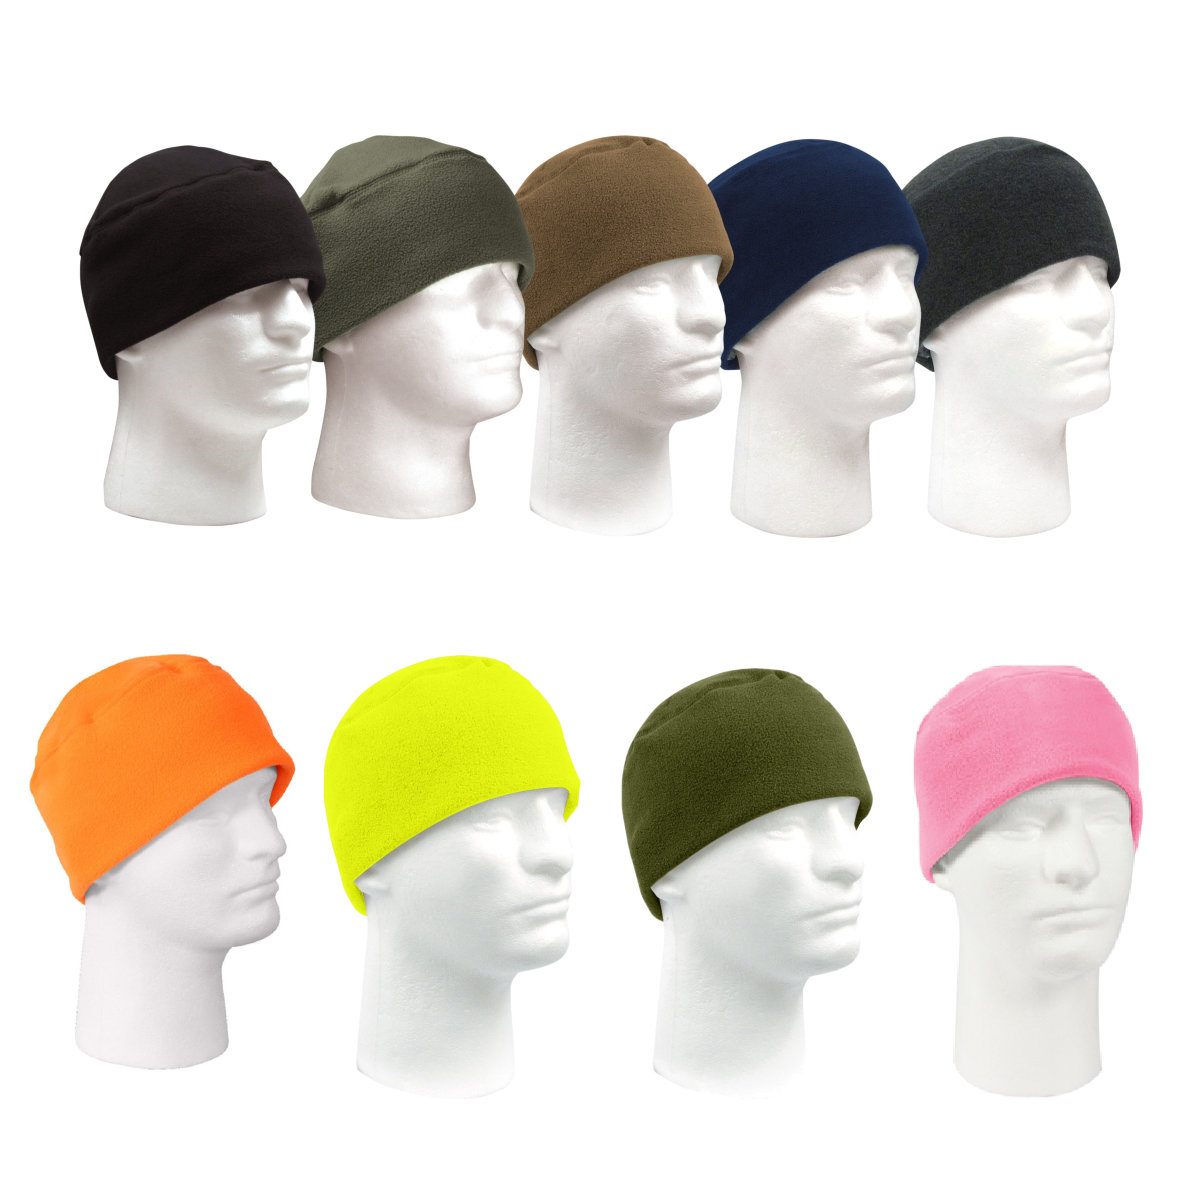 Warm Polar Fleece Military Style Watch Cap or Beanie